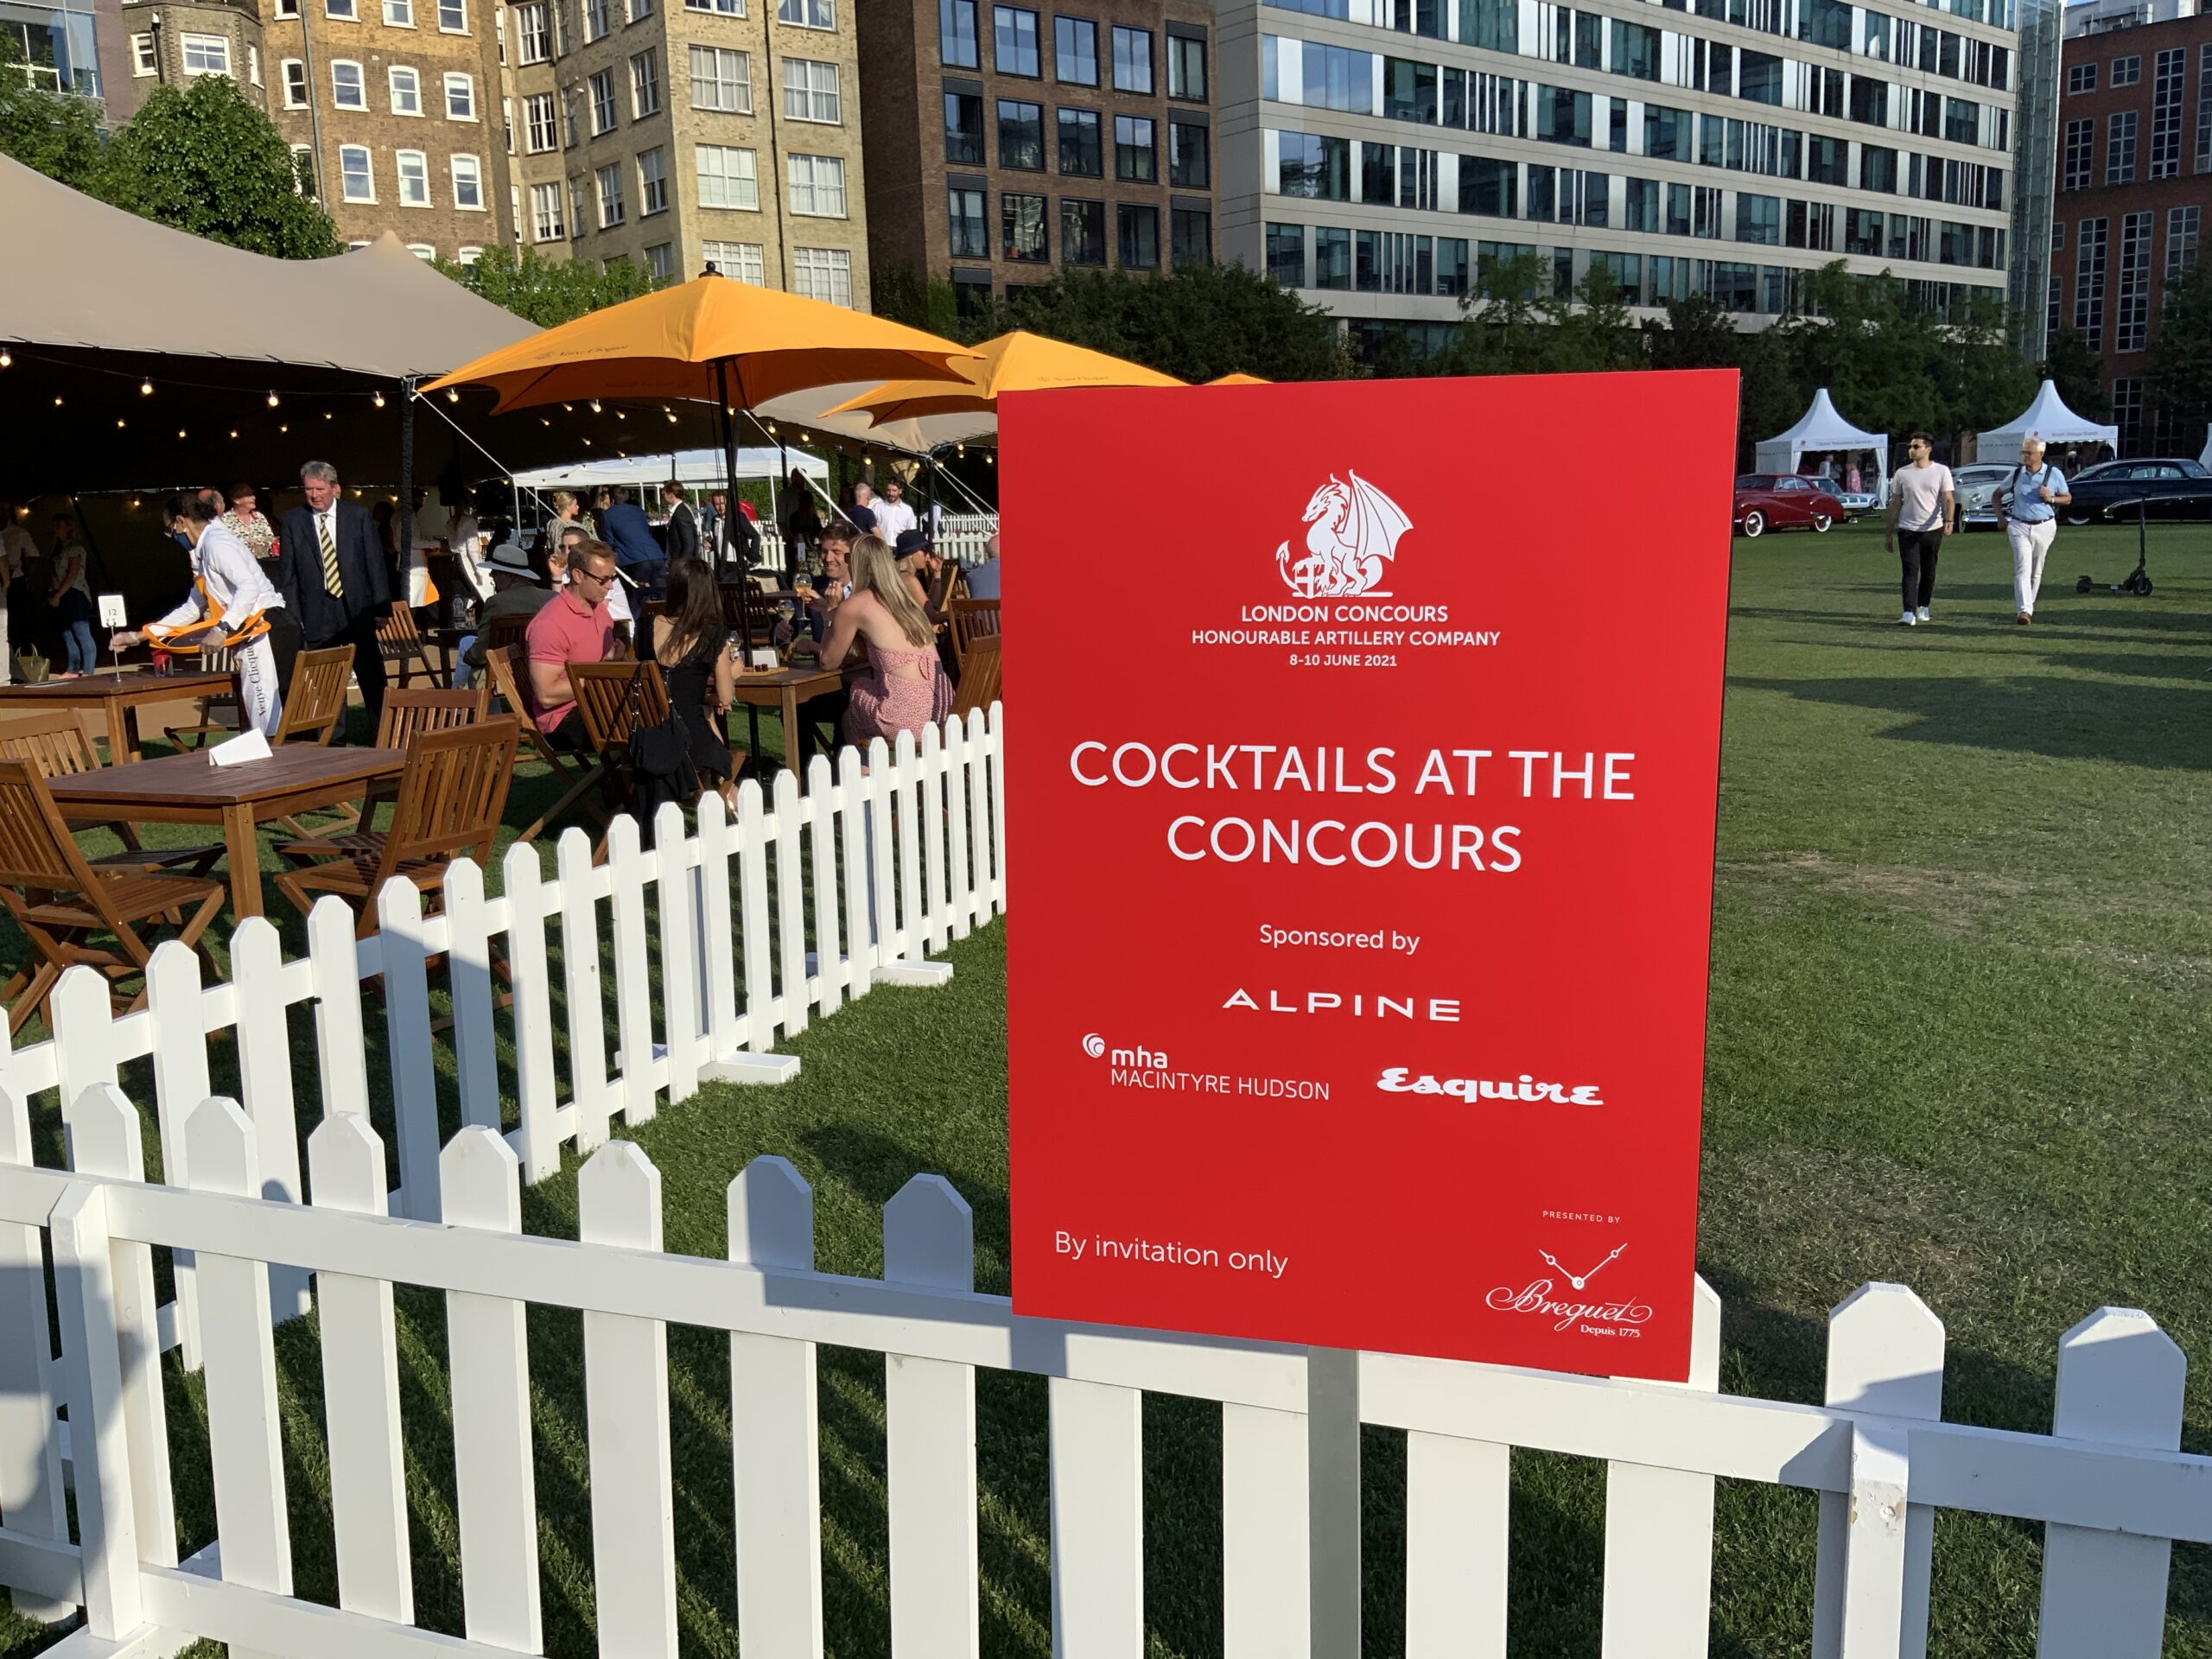 Cocktails on the Concours